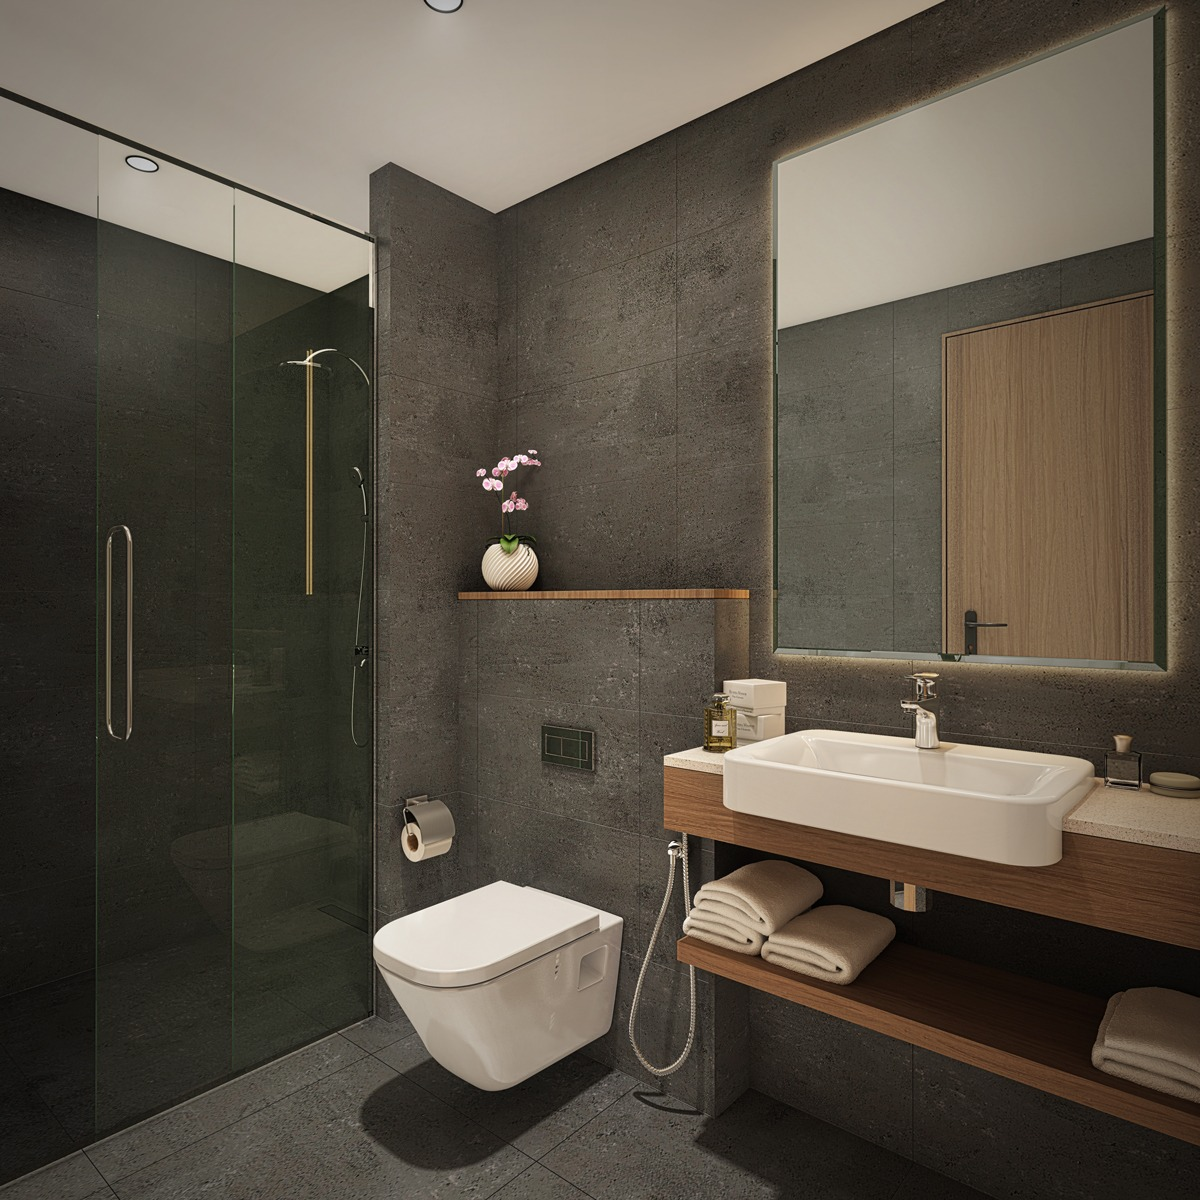 https://www.edgedesign.ae/wp-content/uploads/2019/02/Naples-by-Giovanni-Boutique-Suites-One-Bedroom-Apartment_Bathroom.jpg